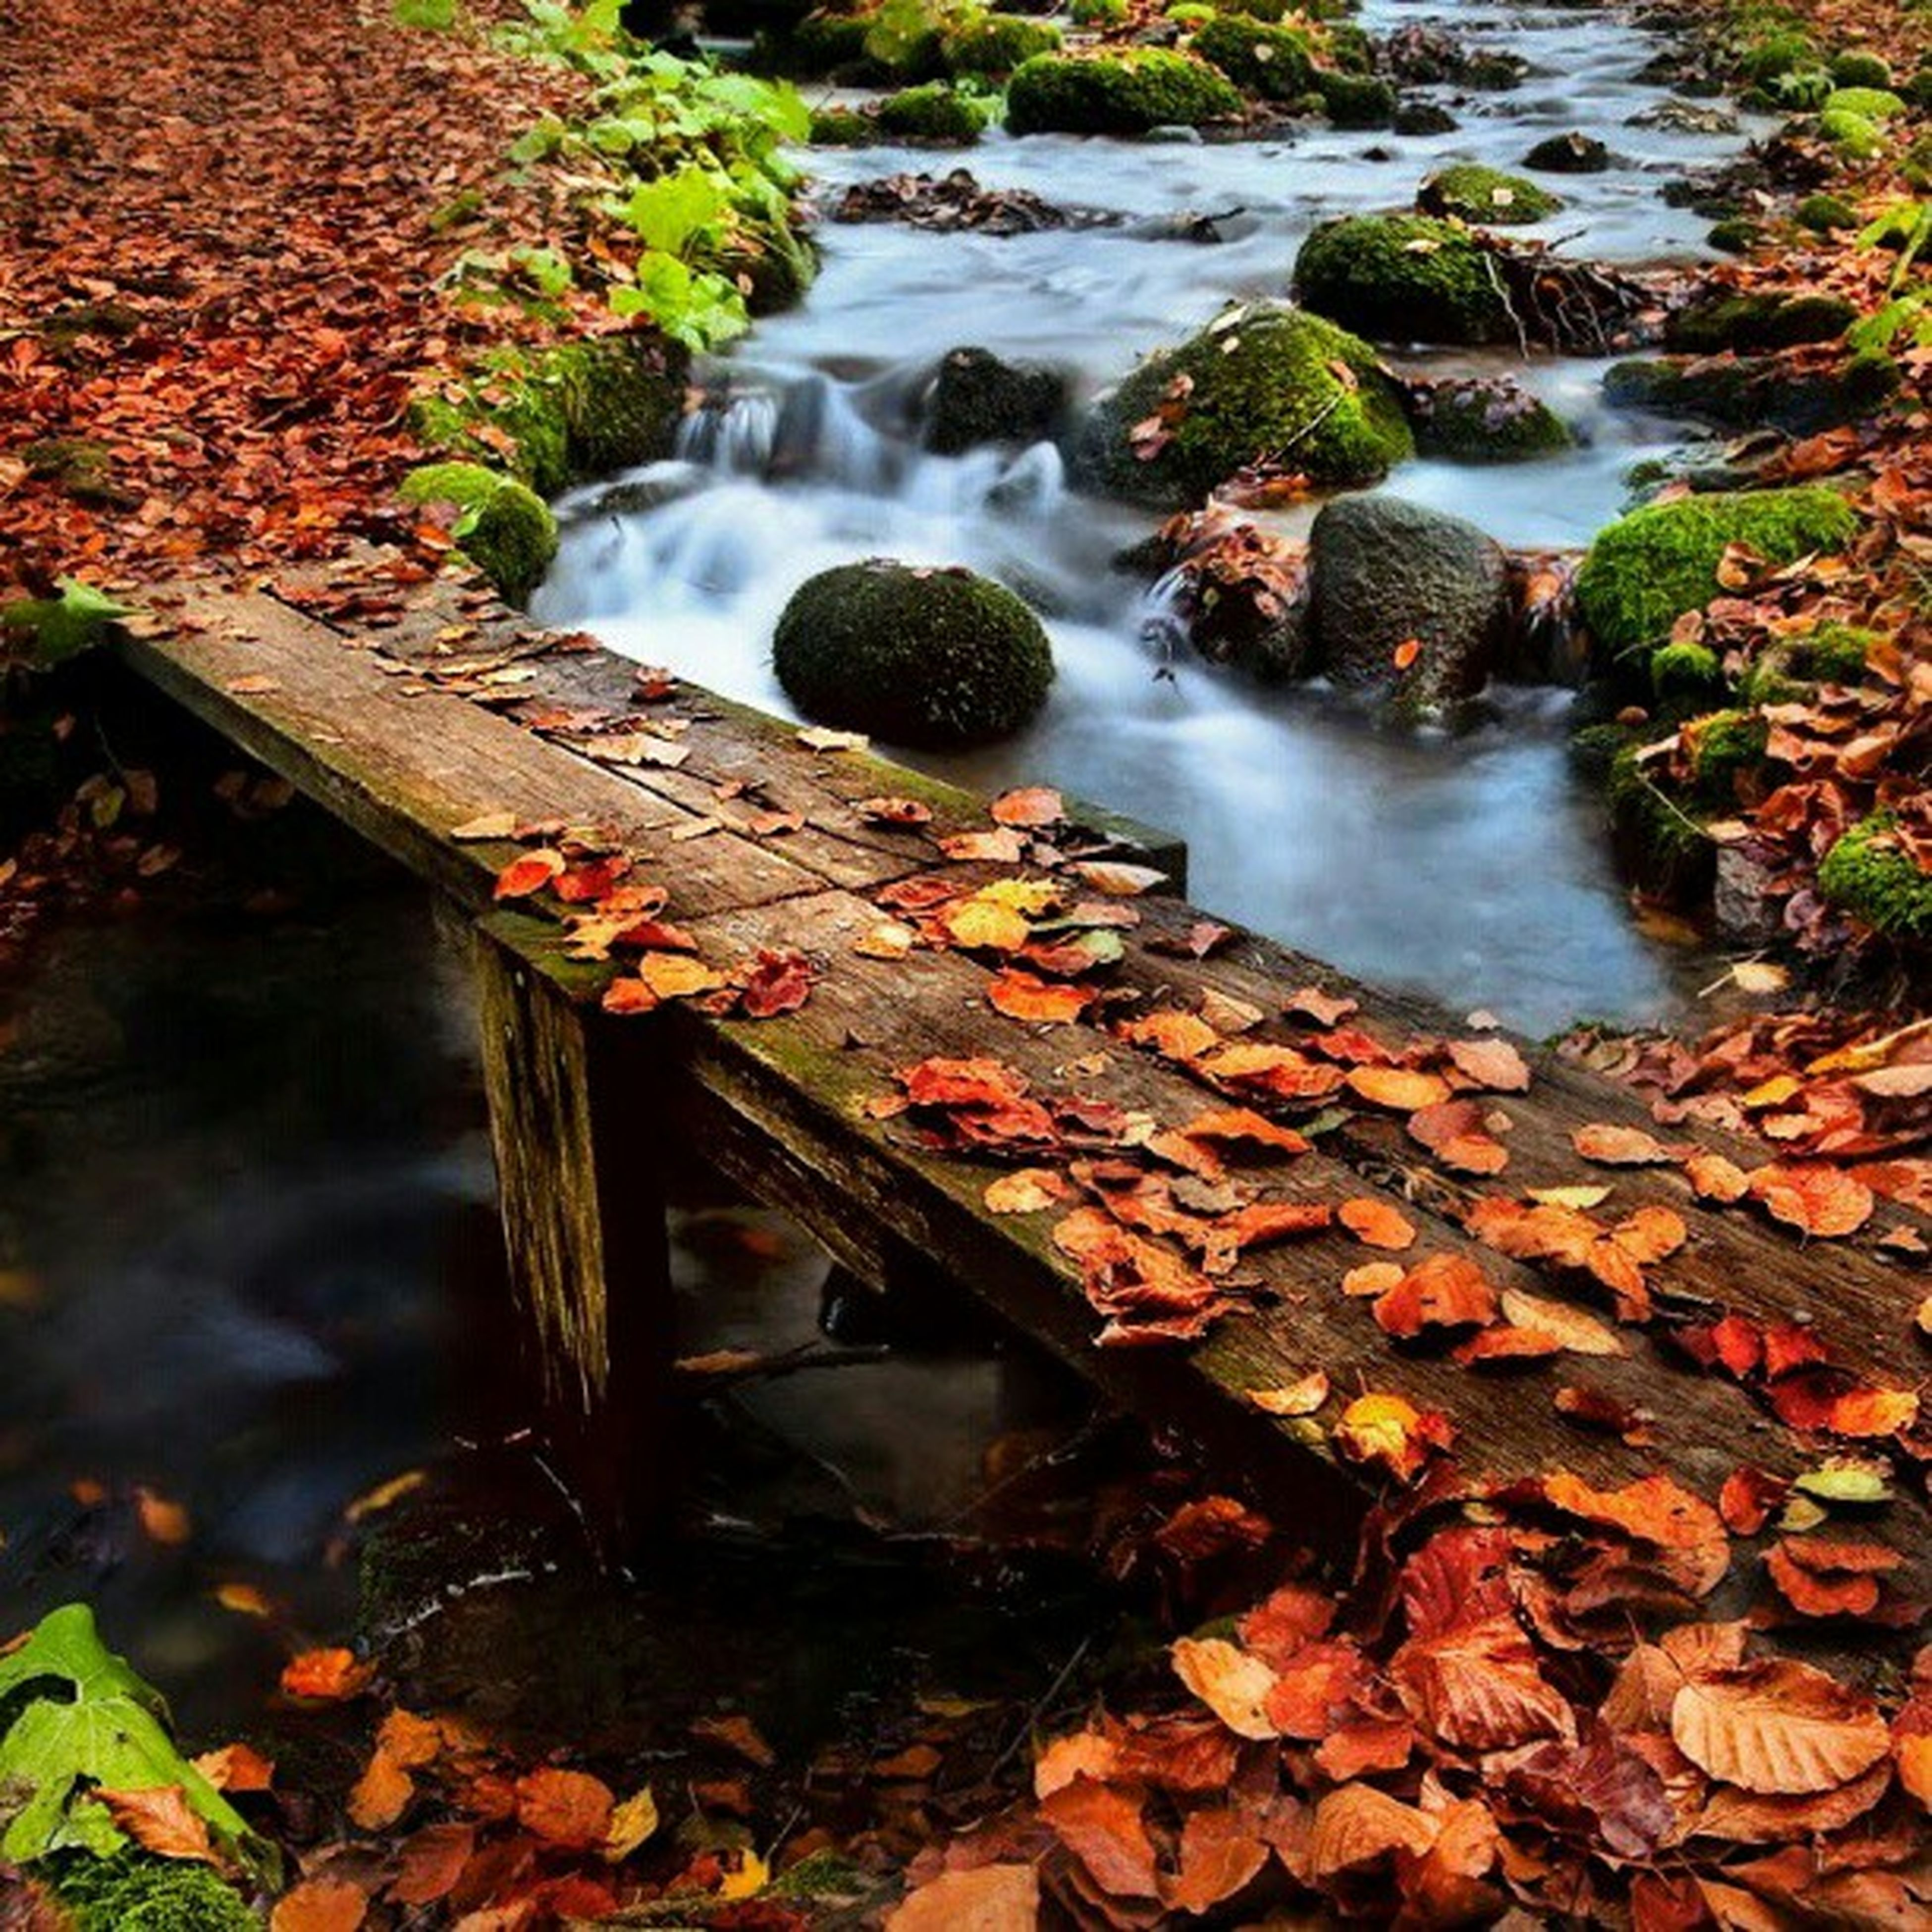 water, rock - object, flowing water, waterfall, flowing, motion, stream, forest, high angle view, nature, moss, long exposure, plant, day, outdoors, steps, stone - object, rock, built structure, no people